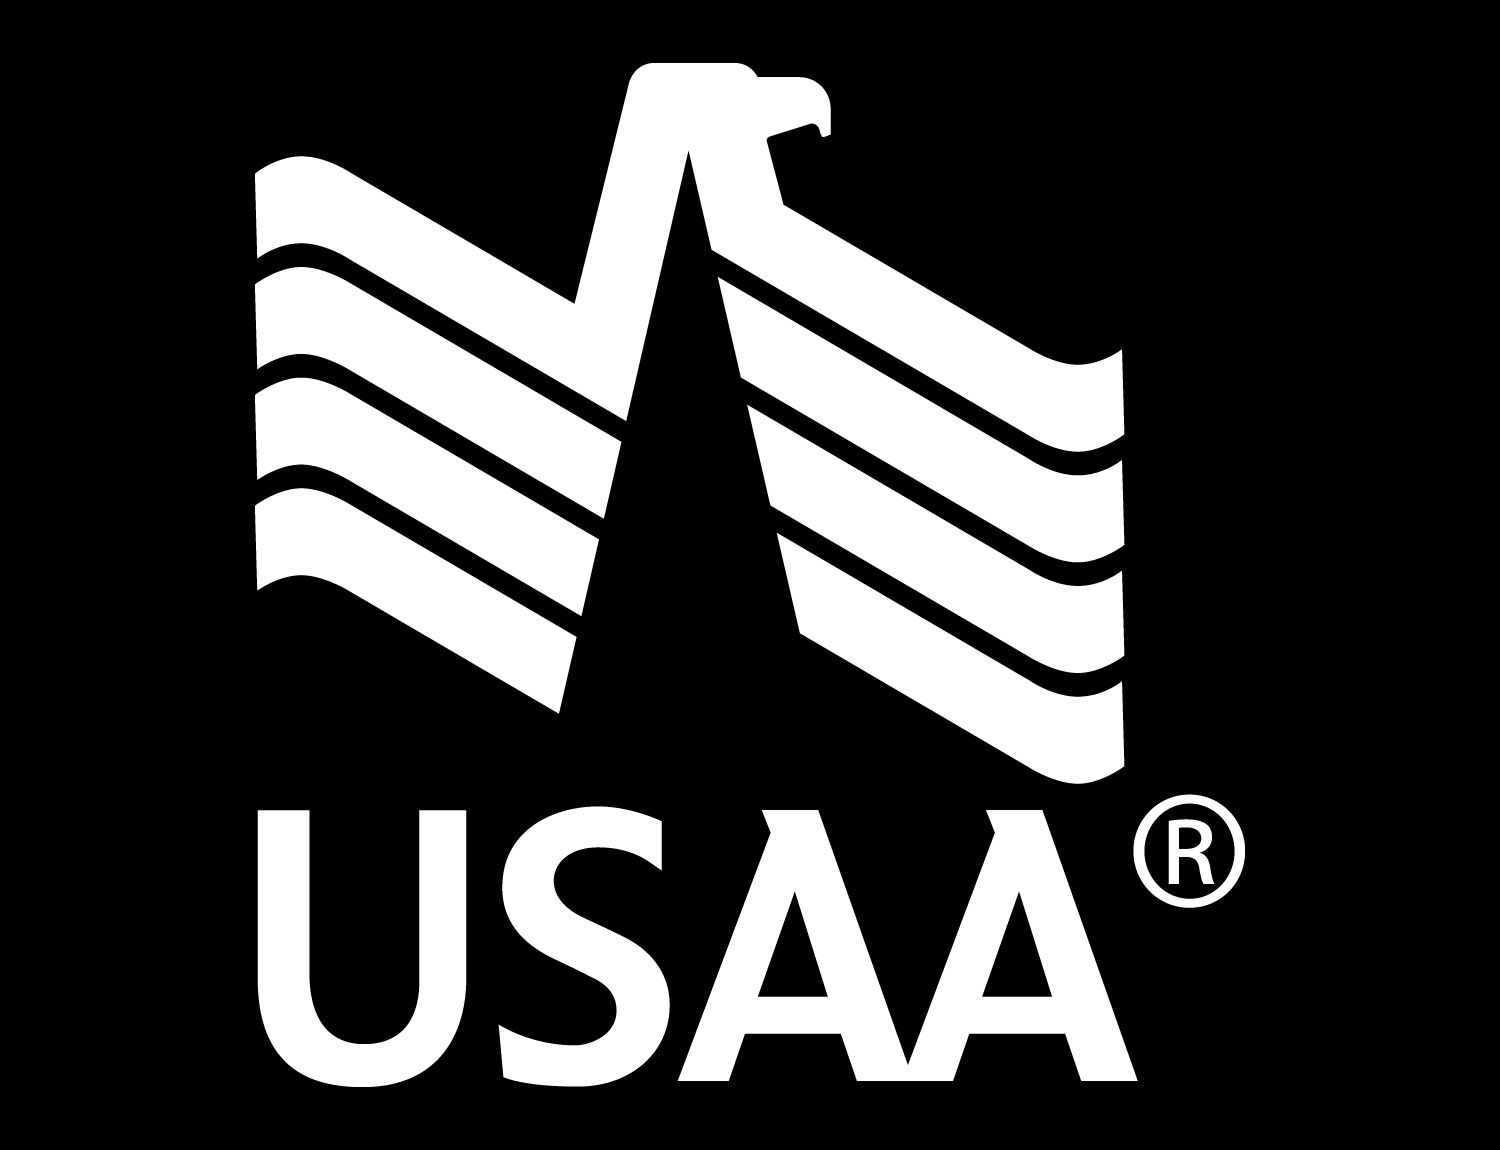 Usaa Symbol Refinance Mortgage Mortgage Rates Mortgage Payoff